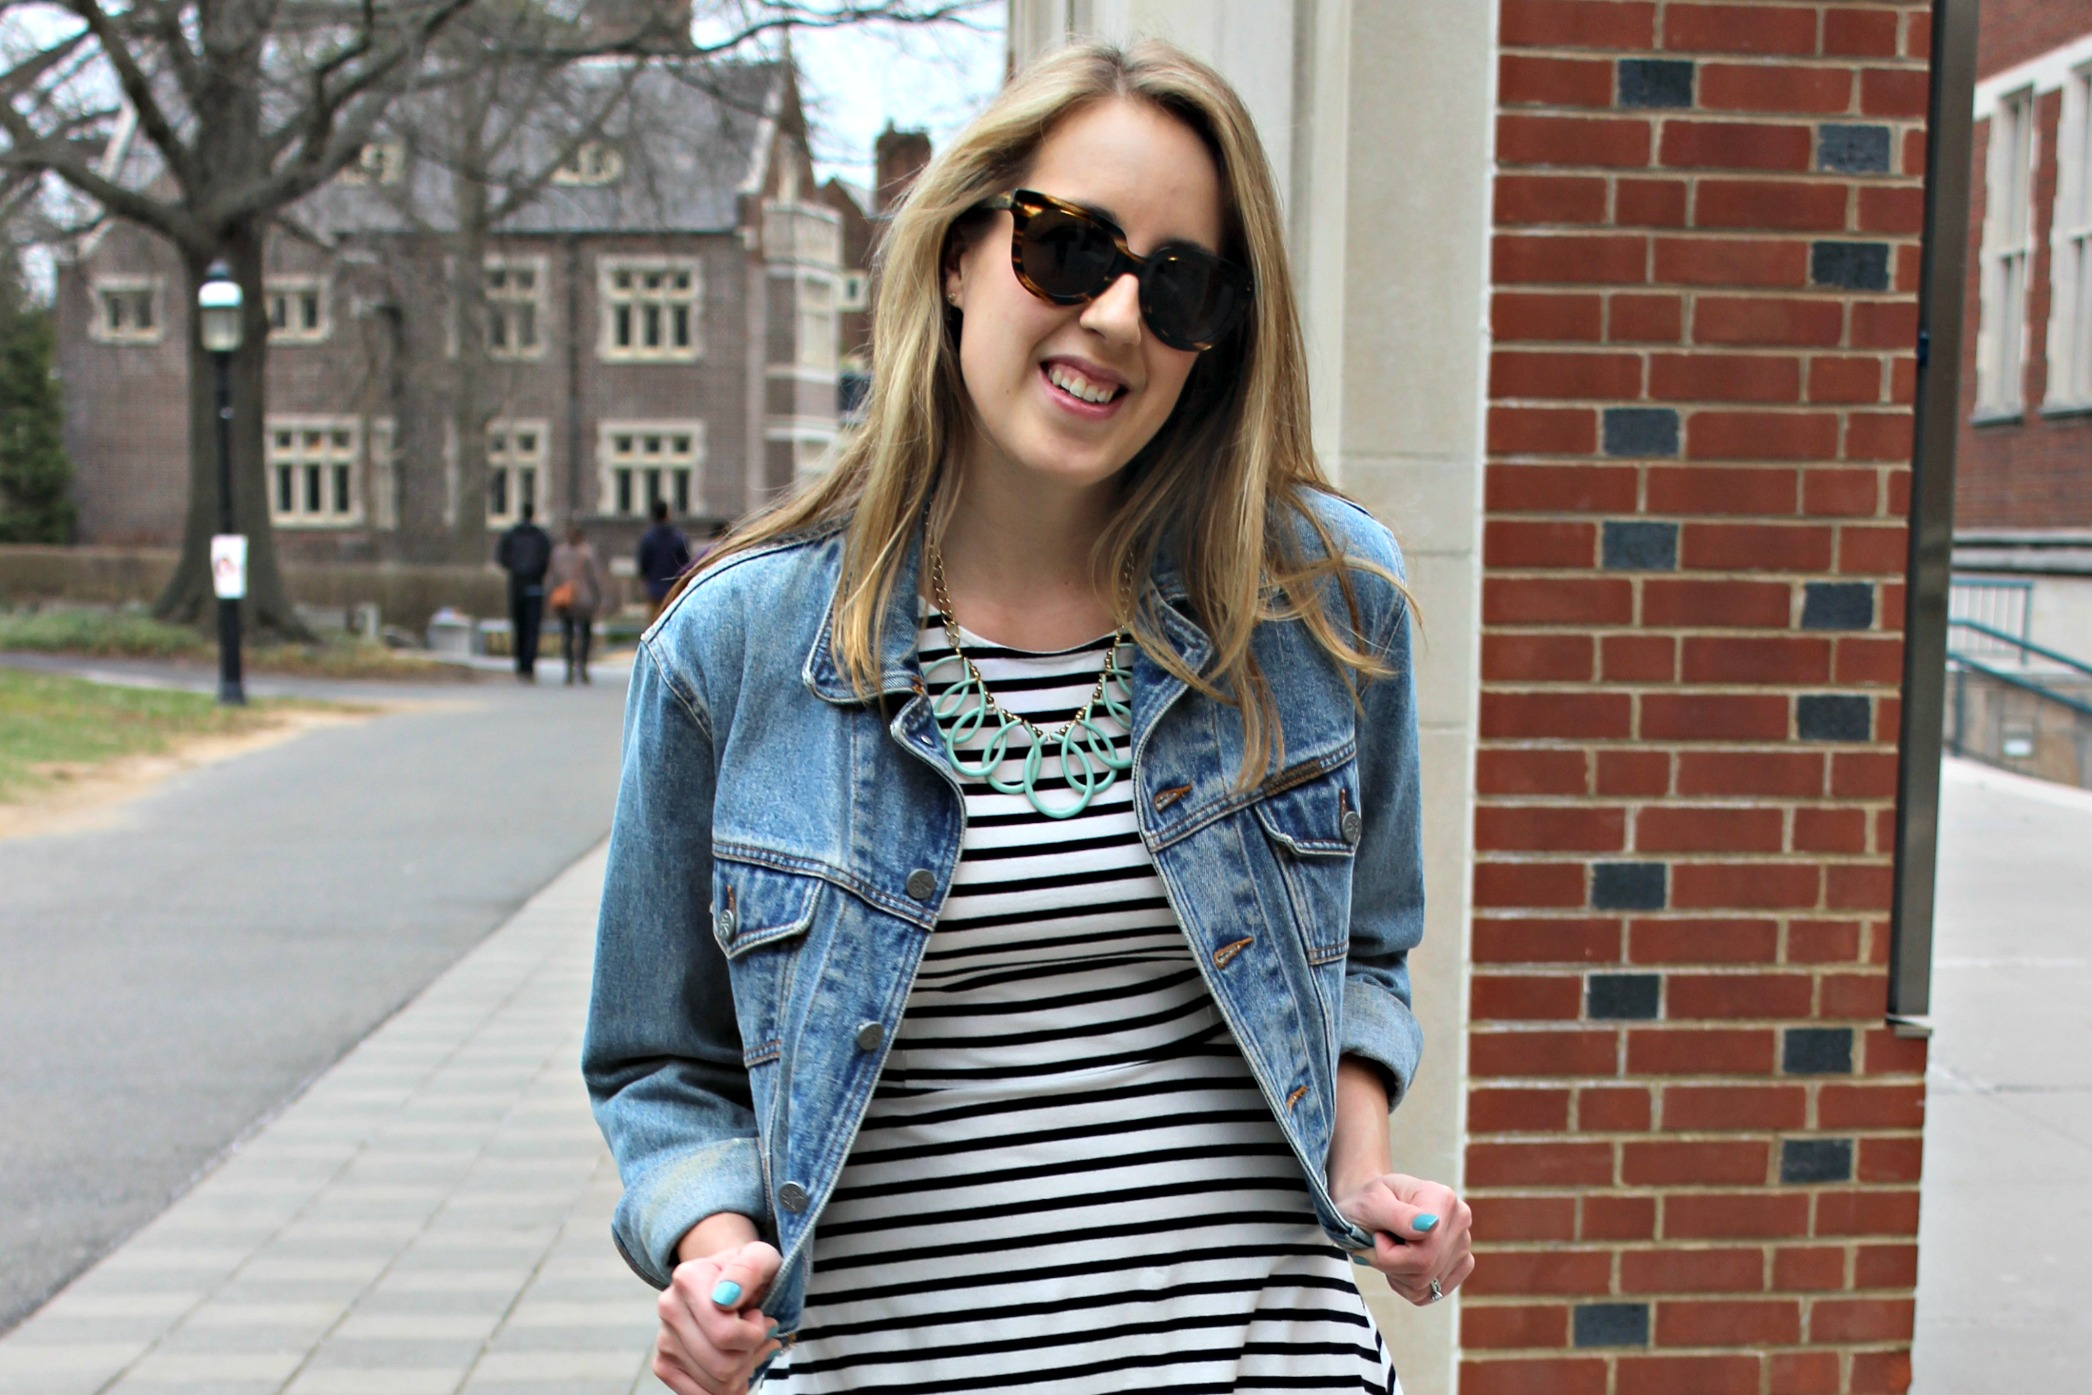 Wearing: Back to Basics in a Jean Jacket and a Dress